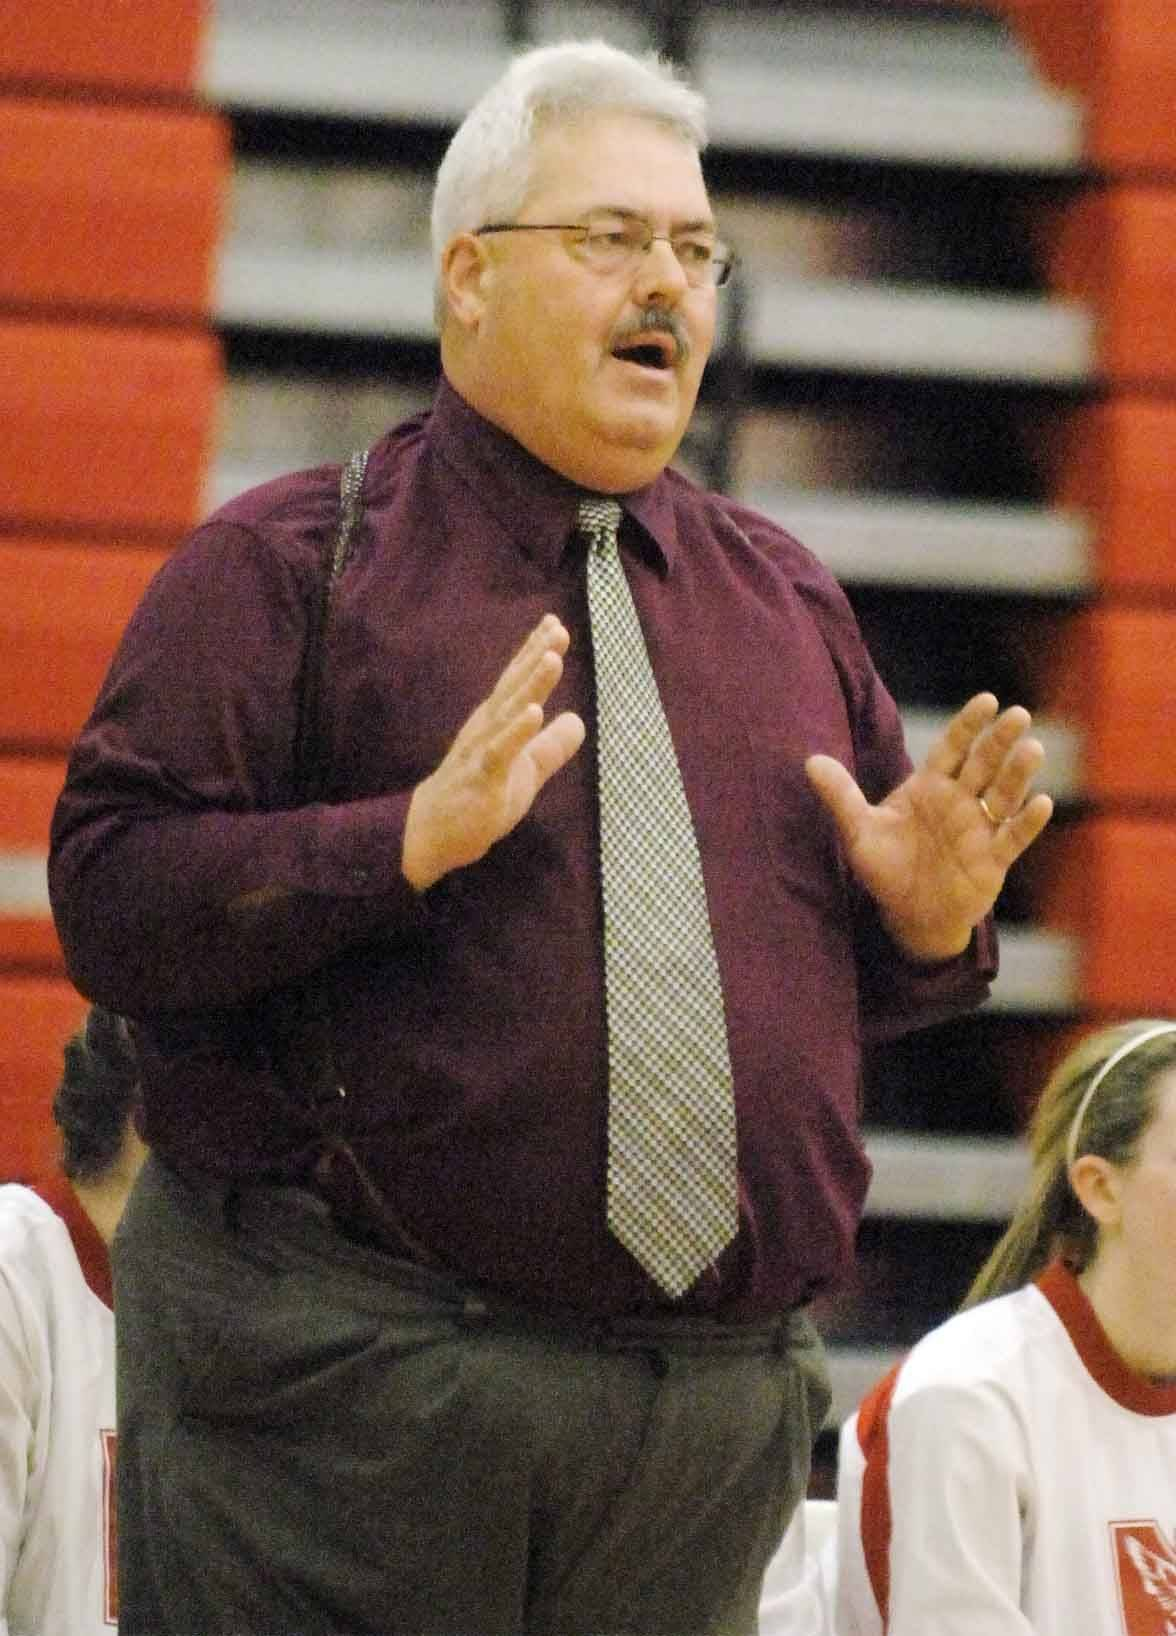 Naperville Central's Andy Nussbaum recently won his 500th game as a girls basketball coach.